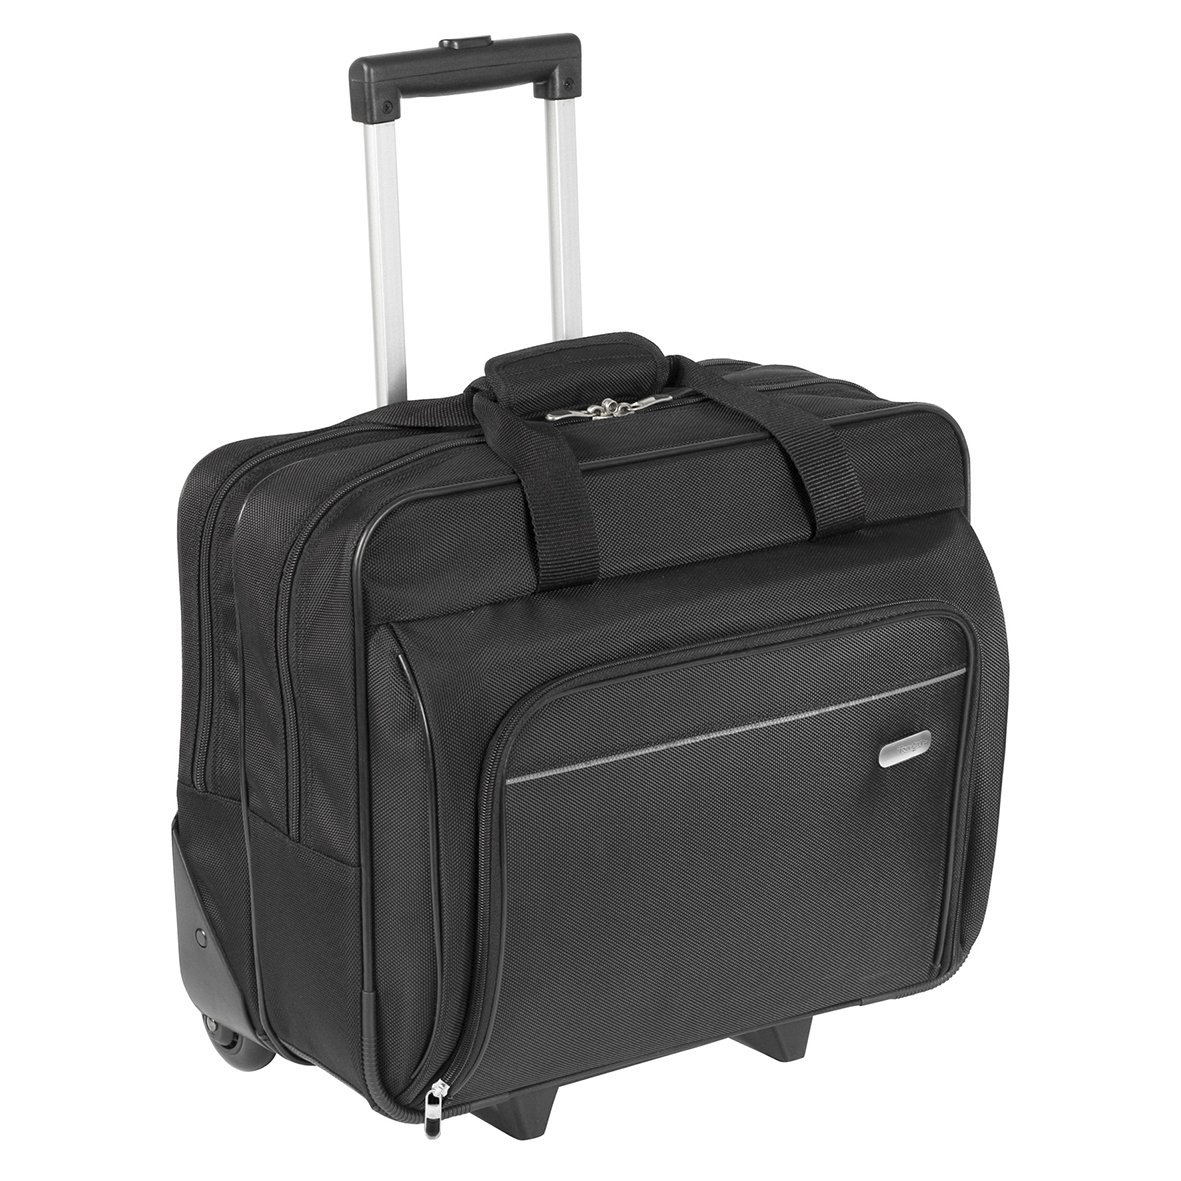 Targus TBR003EU 16'' Rolling Laptop Case Bag